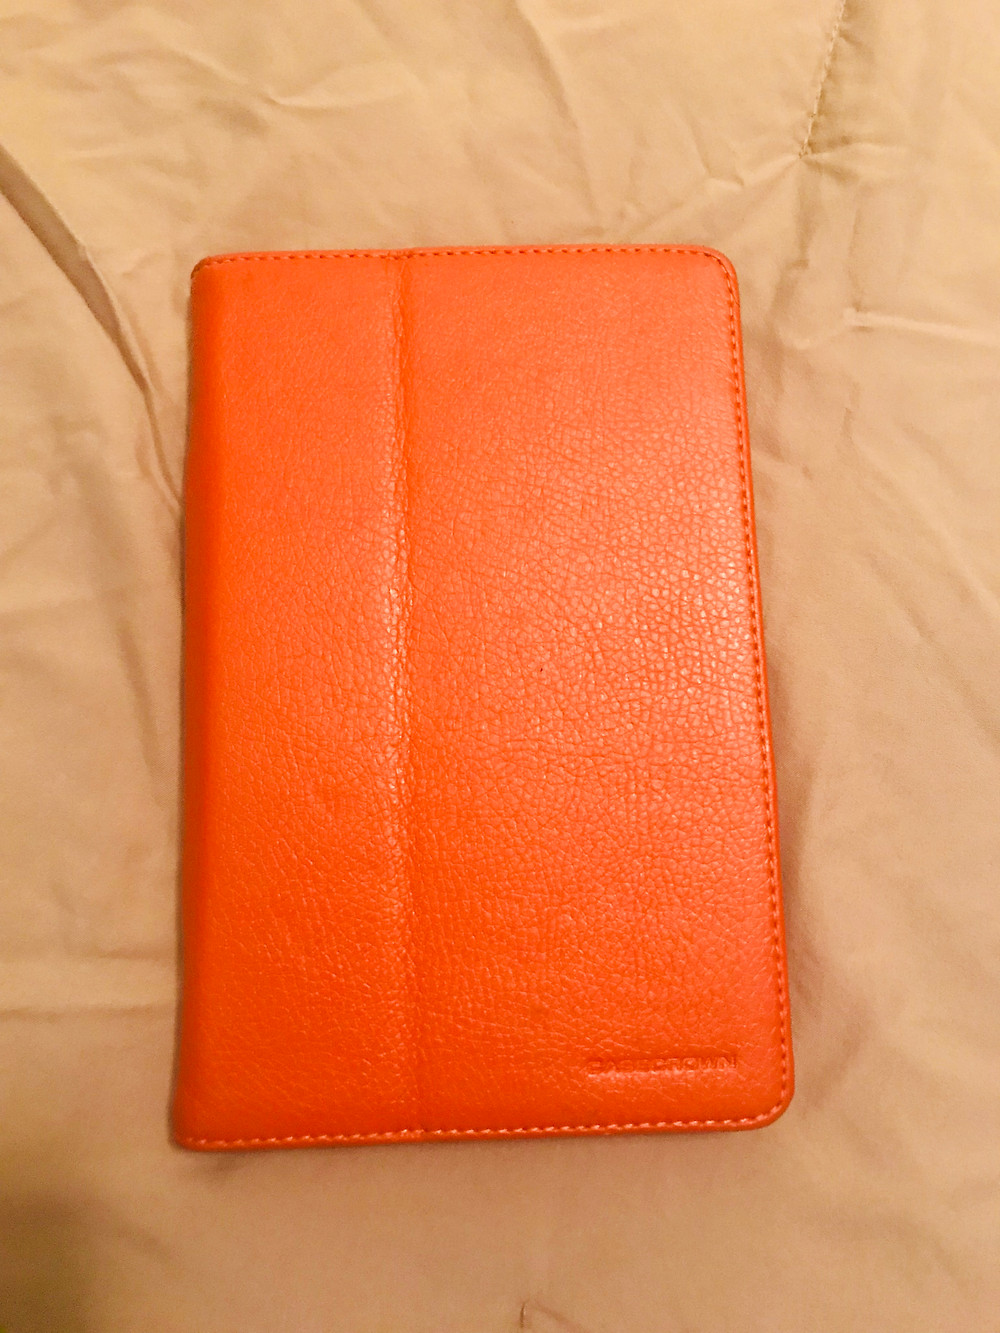 Picture of my Kindle in its case by Kita the Explorer